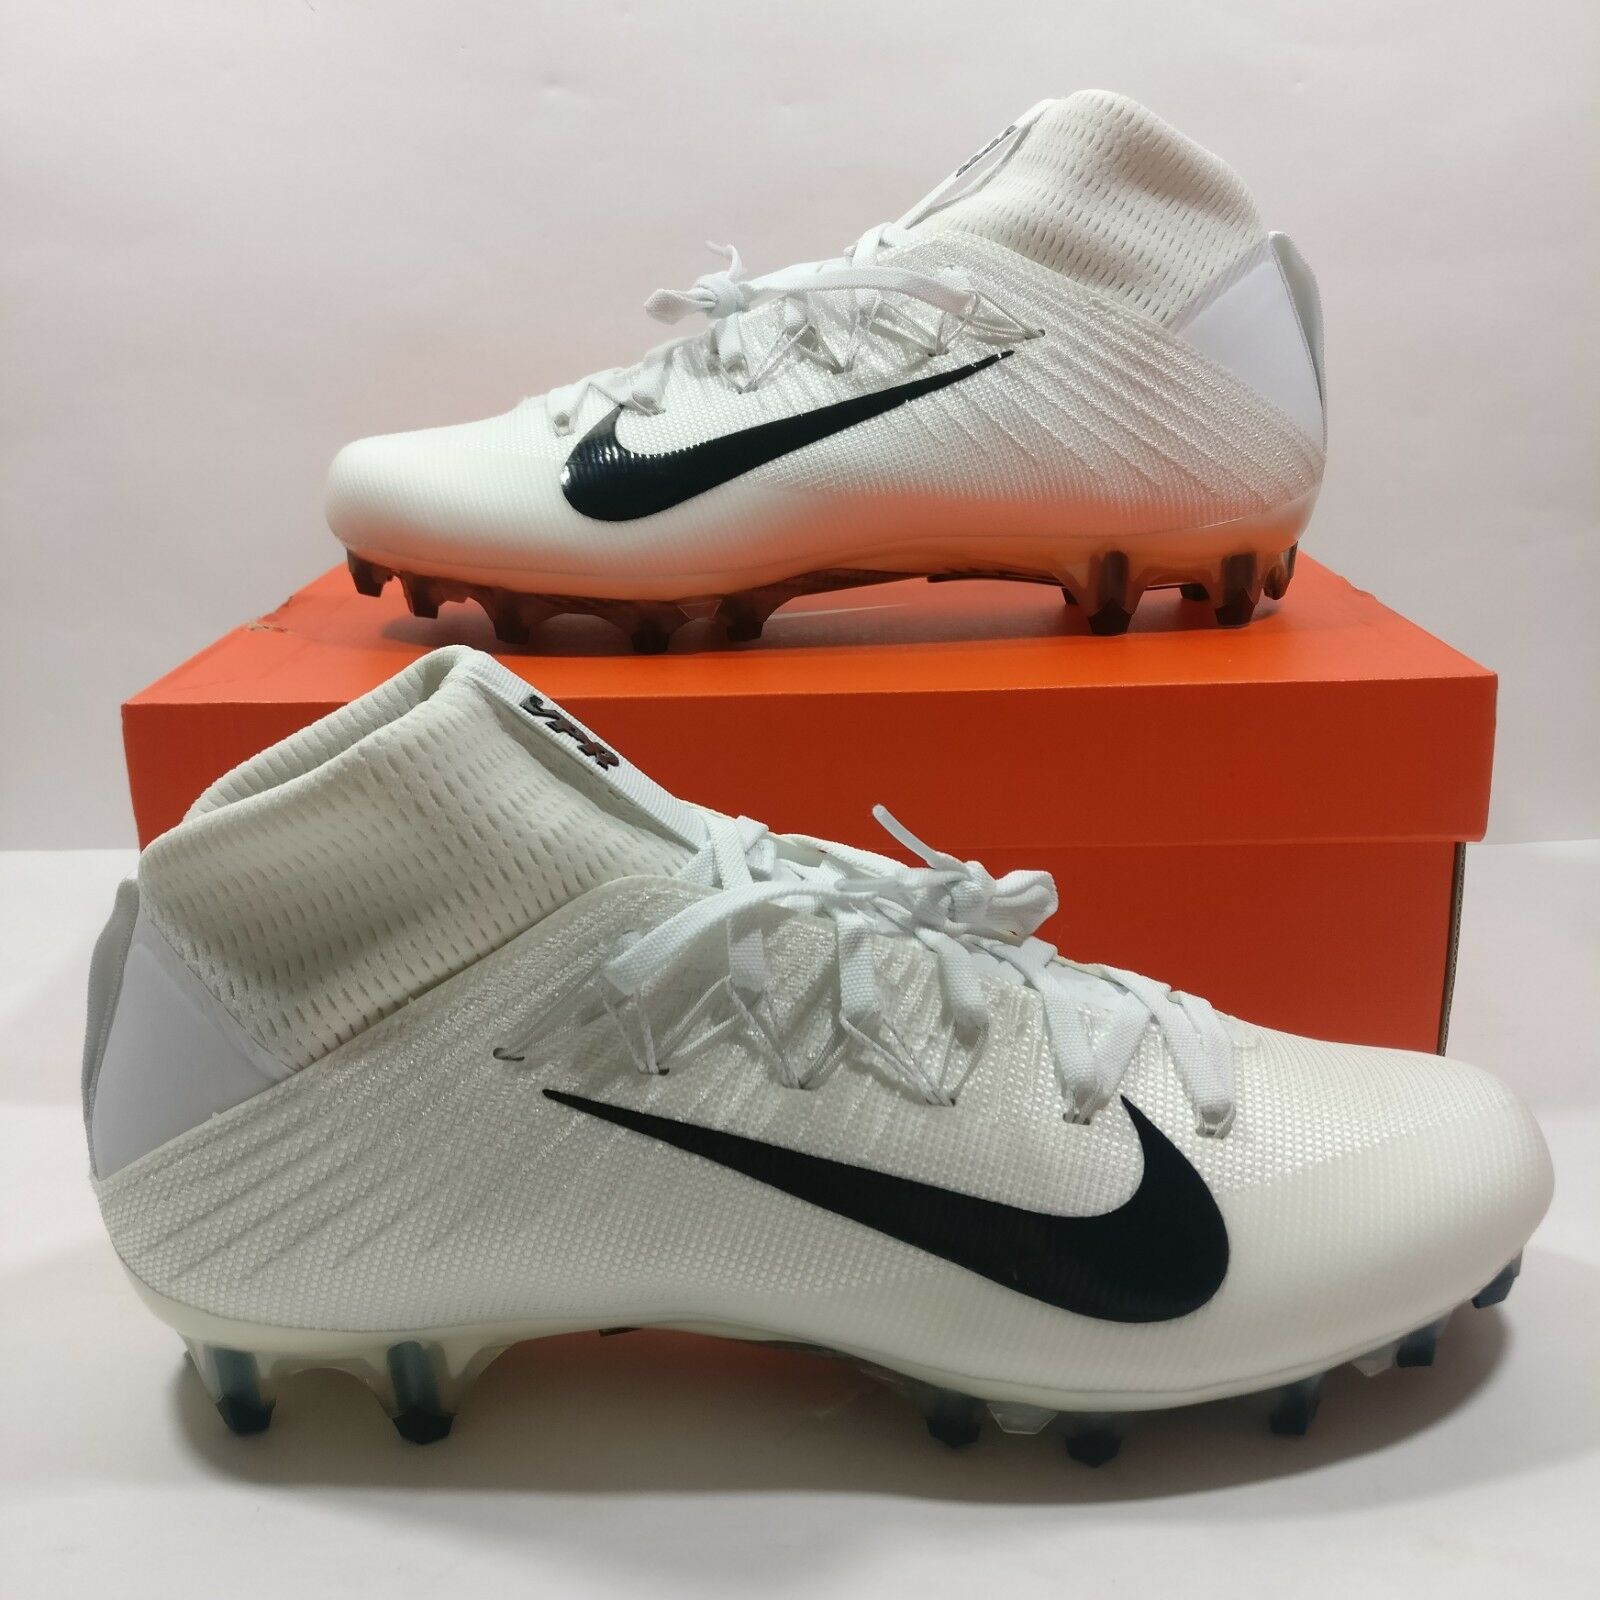 Nike Vapor Untouchable 2 CF Football Cleats Stivali White Nero Size 12 924113-101